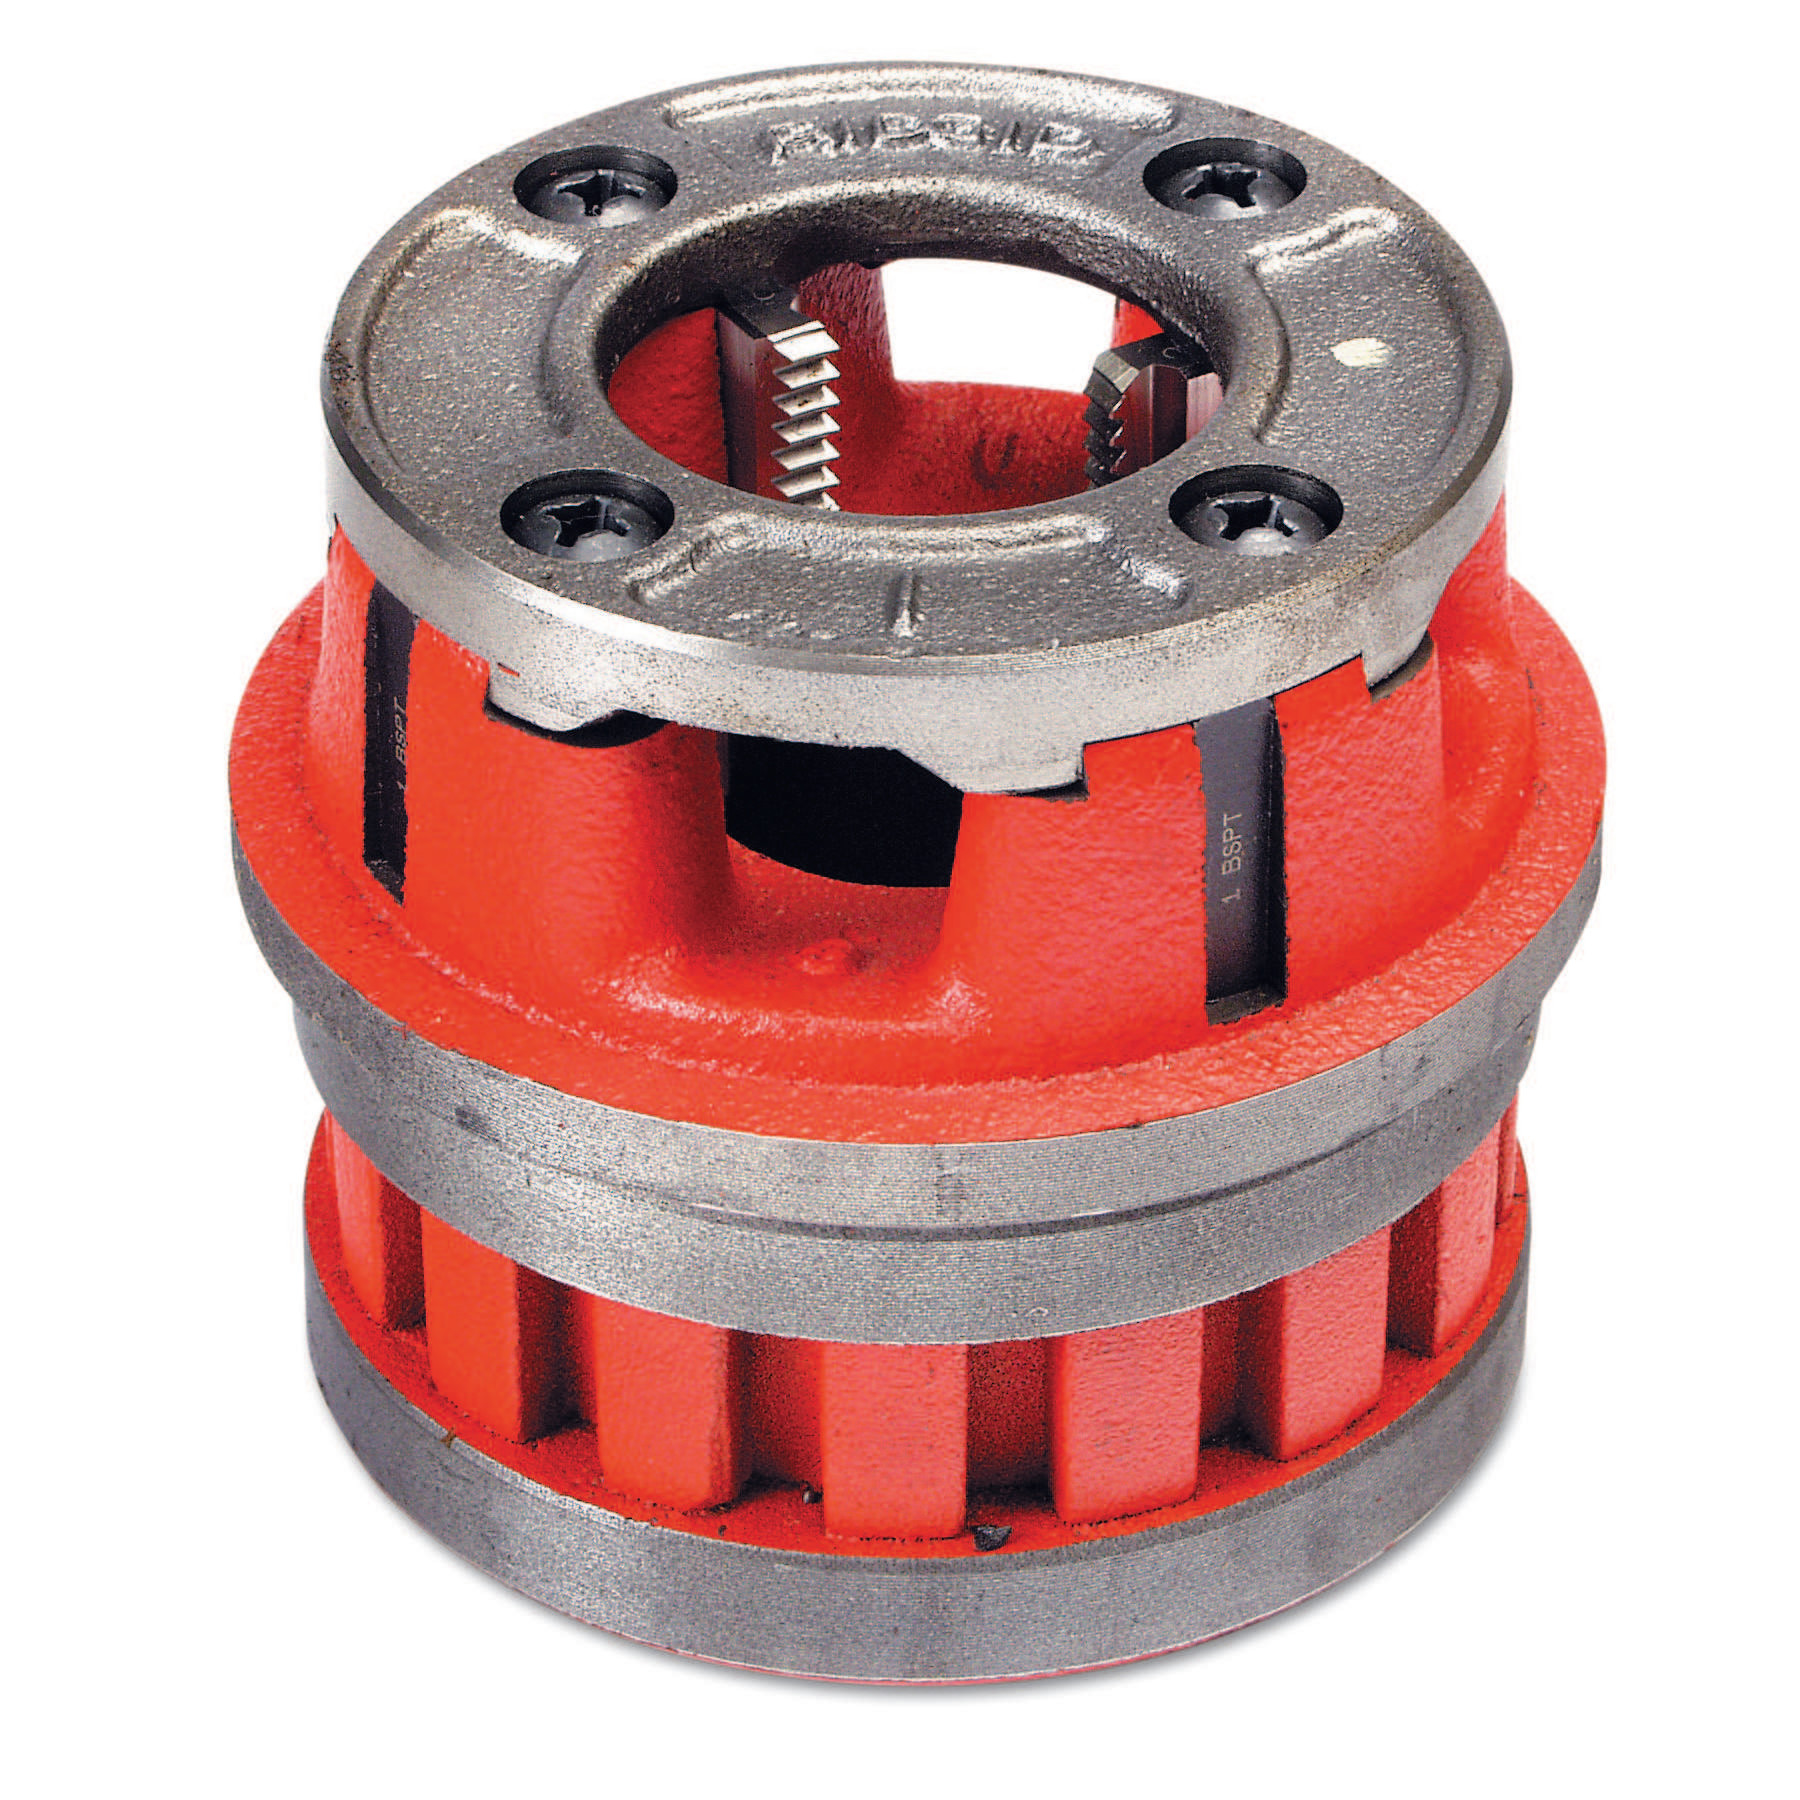 Ridgid Manual Threading/Pipe and Bolt Die Heads Complete w/Dies, 1/4 in - 18 NPT, 12R